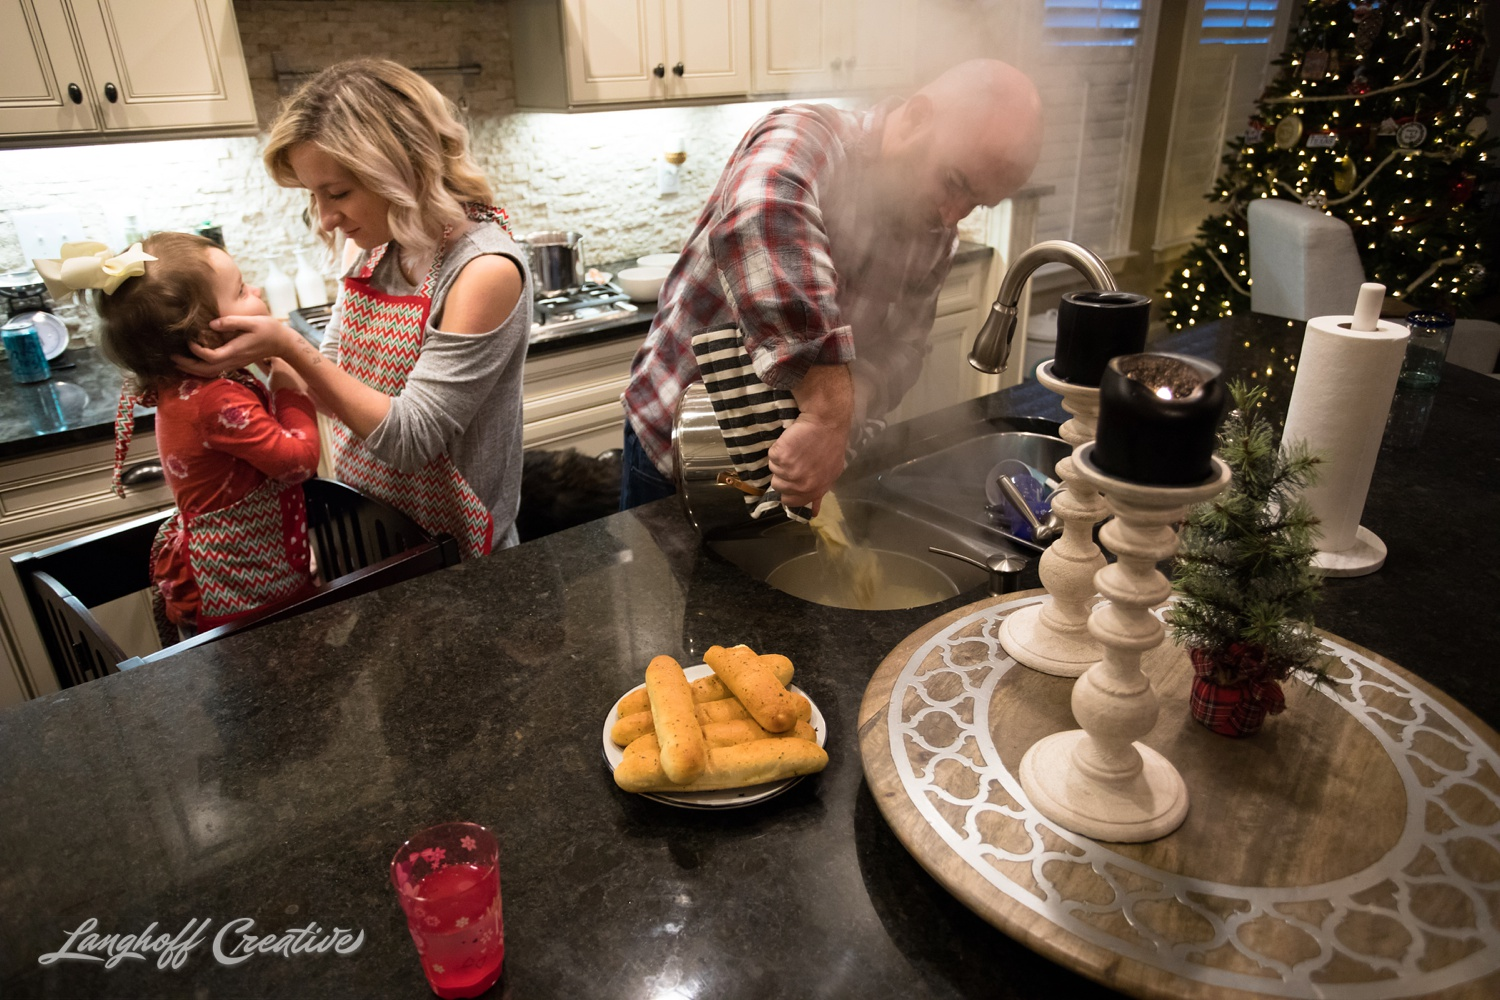 20171125-McGrathChristmas-DayInTheLife-Holidays-LanghoffCreative-RealLifeSession-DocumentaryFamilyPhotography-RDUphotographer-25-photo.jpg